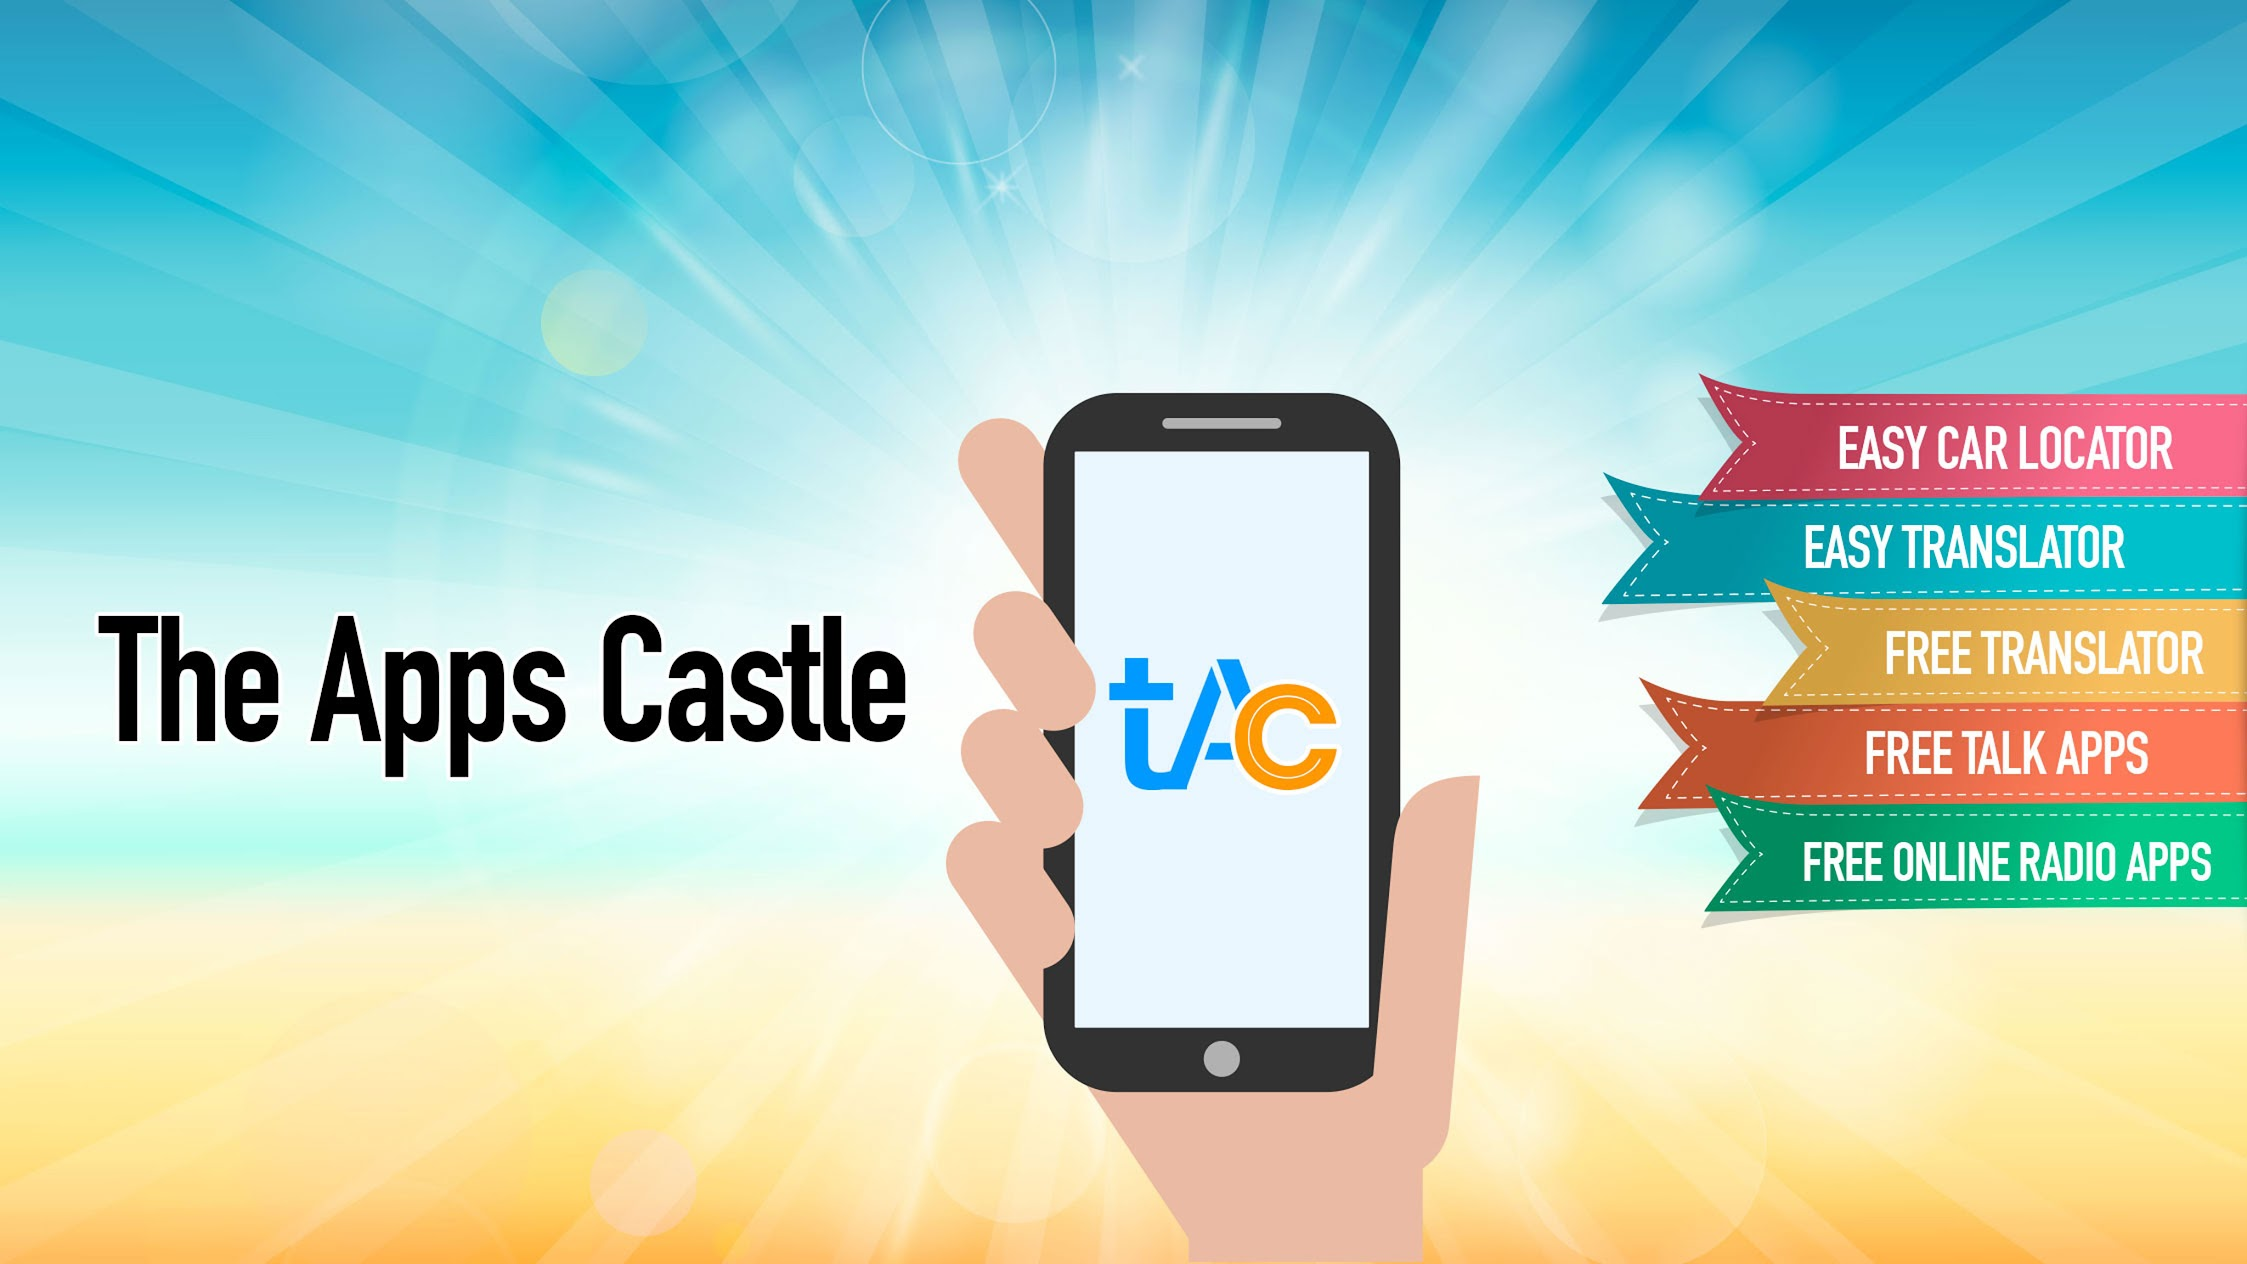 The Apps Castle